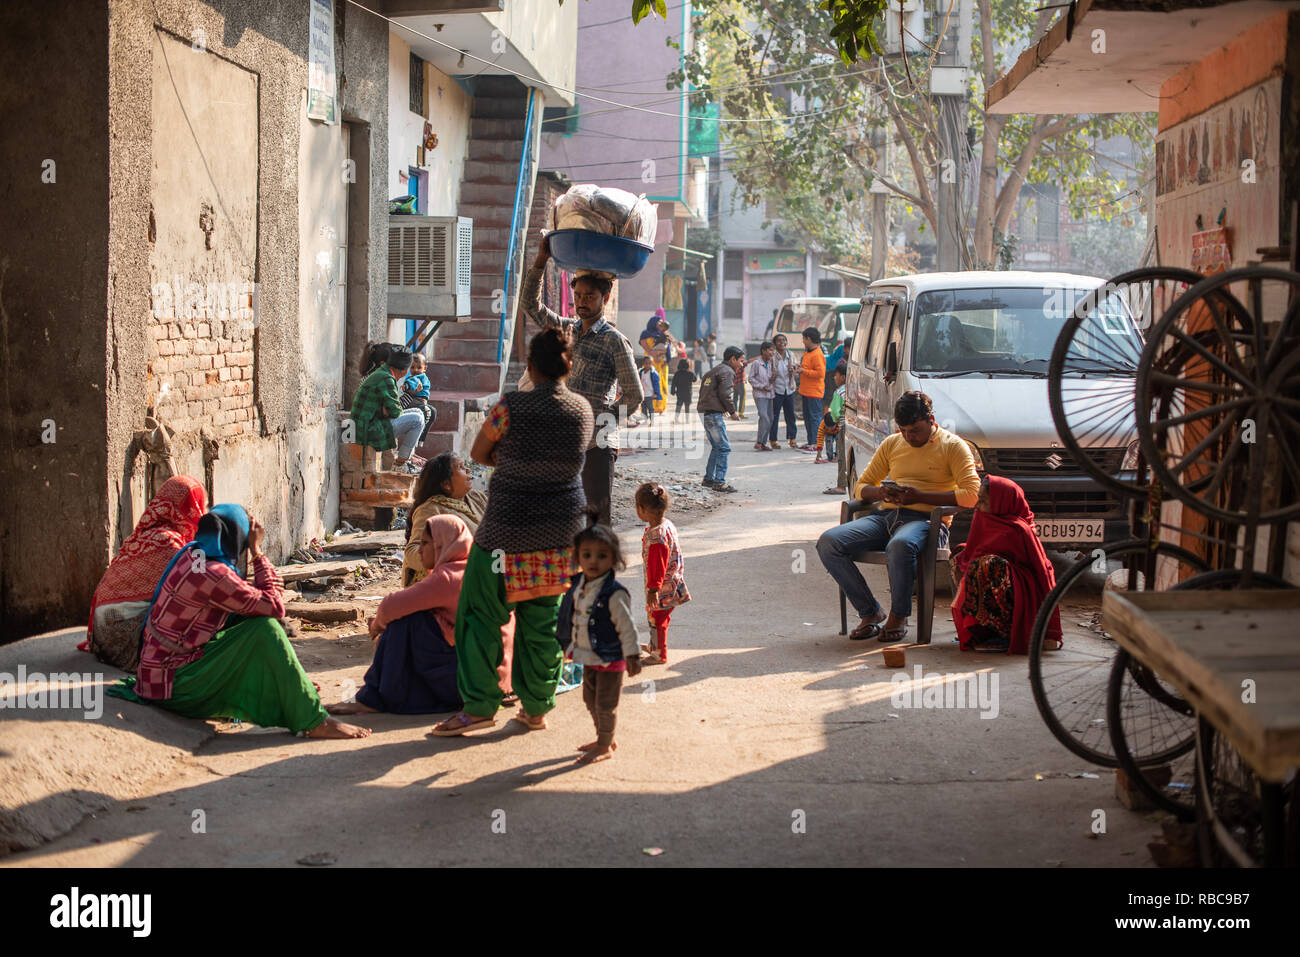 Life on the streets on a wintery sunny afternoon in JJ Colony Madanpur Khadar, New Delhi - people group together approached by a vendor. Stock Photo